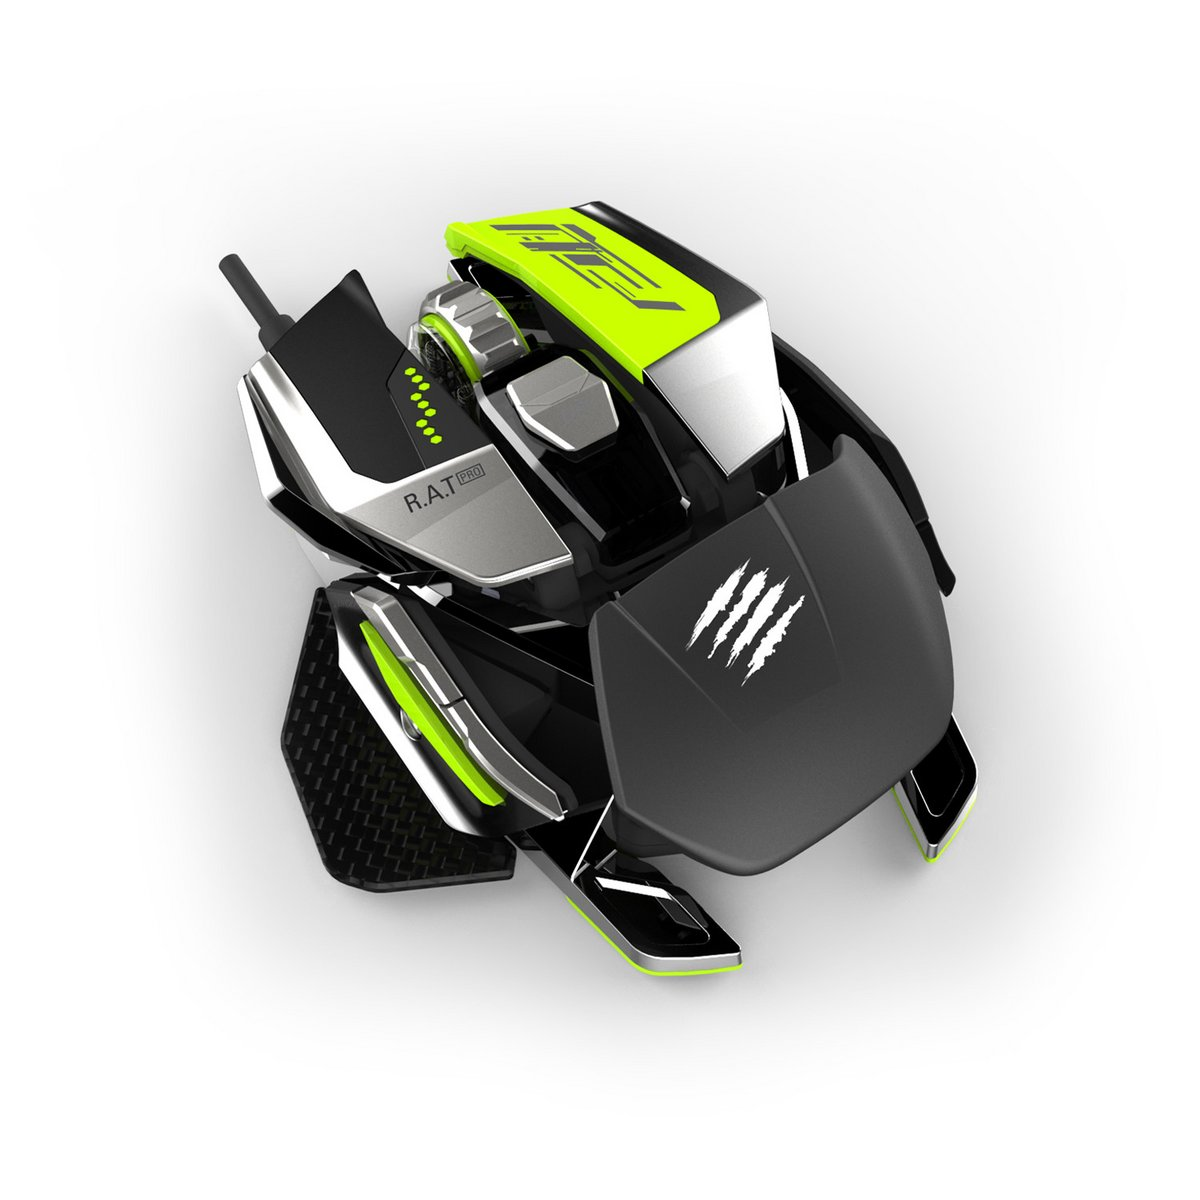 Mad Catz - Souris Gaming R.A.T. PROX